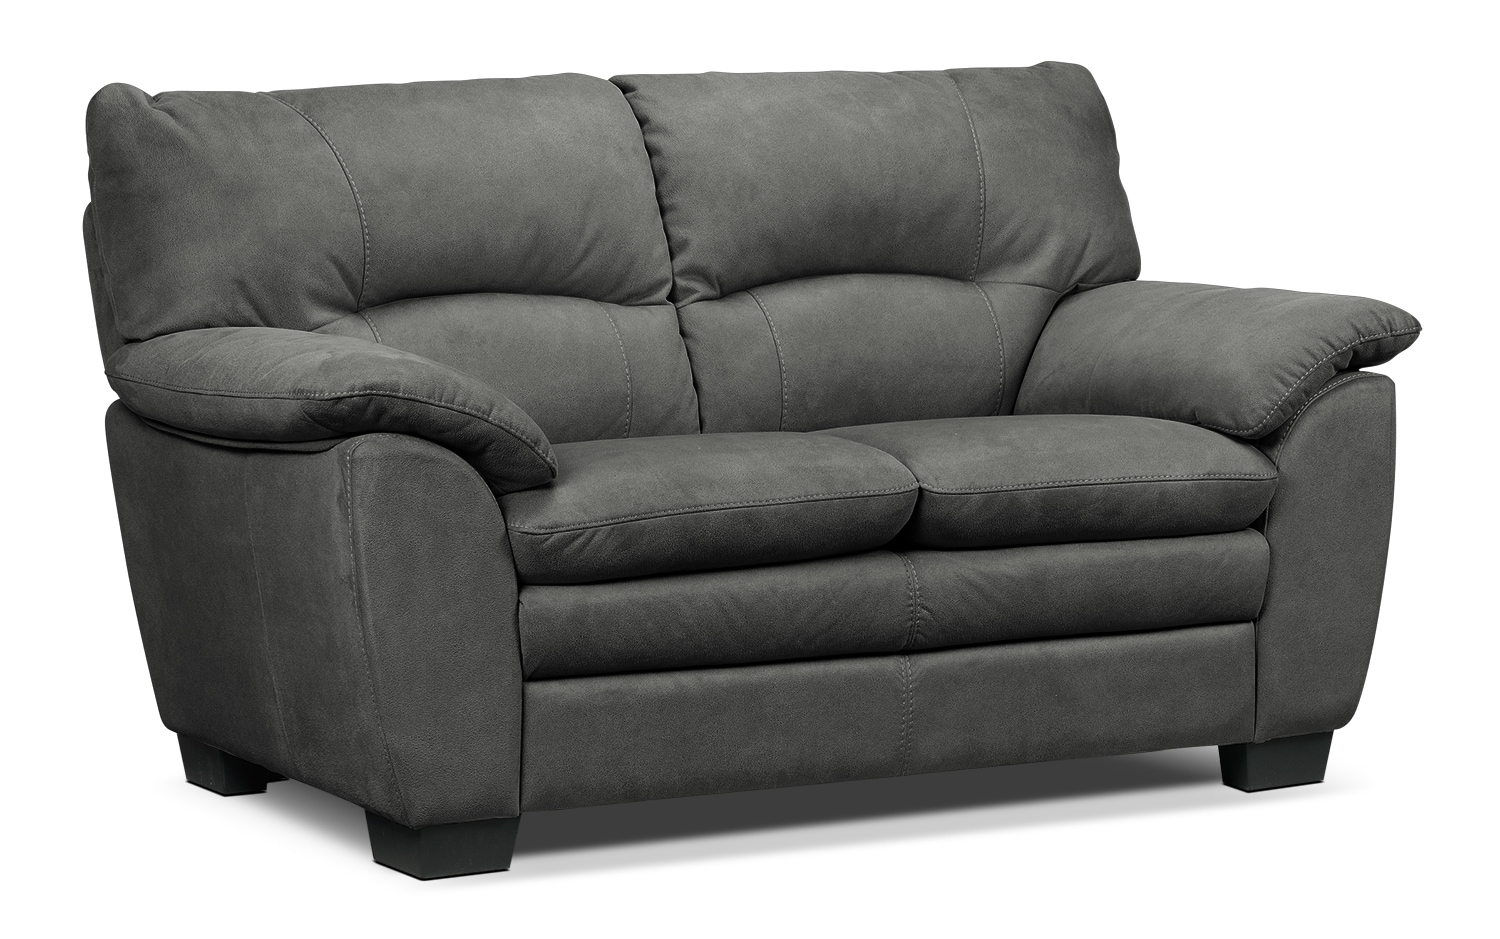 Kelleher Loveseat - Charcoal